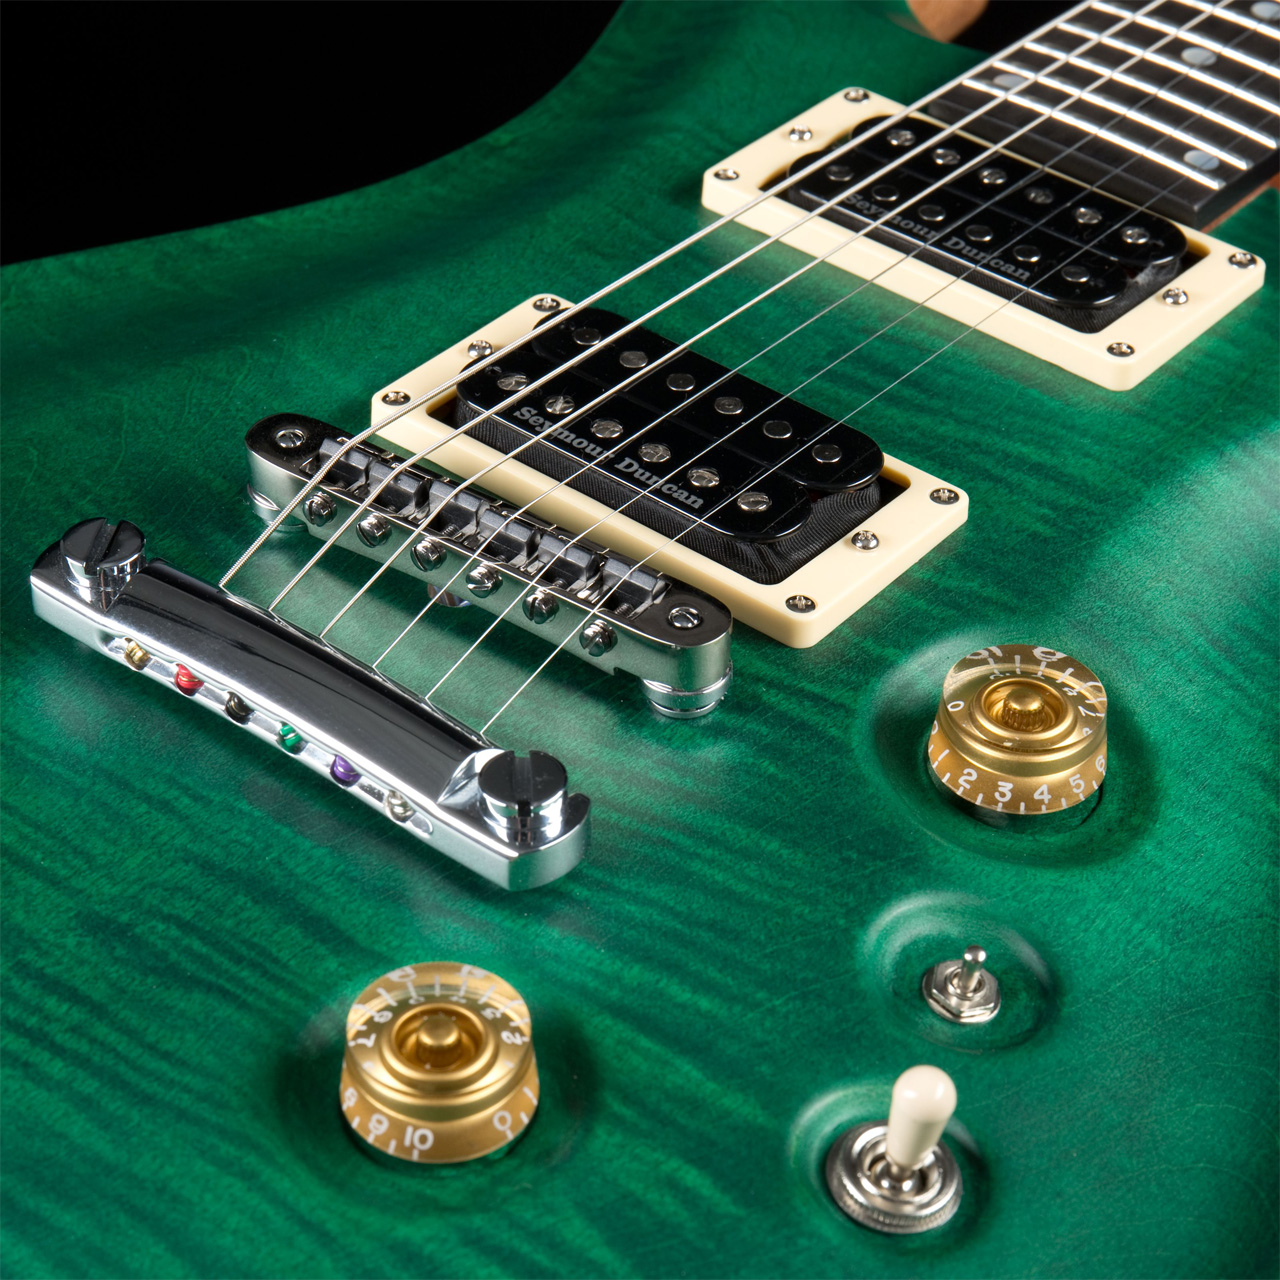 FAME Forum IV Modern Emerald Green Satin Pickups